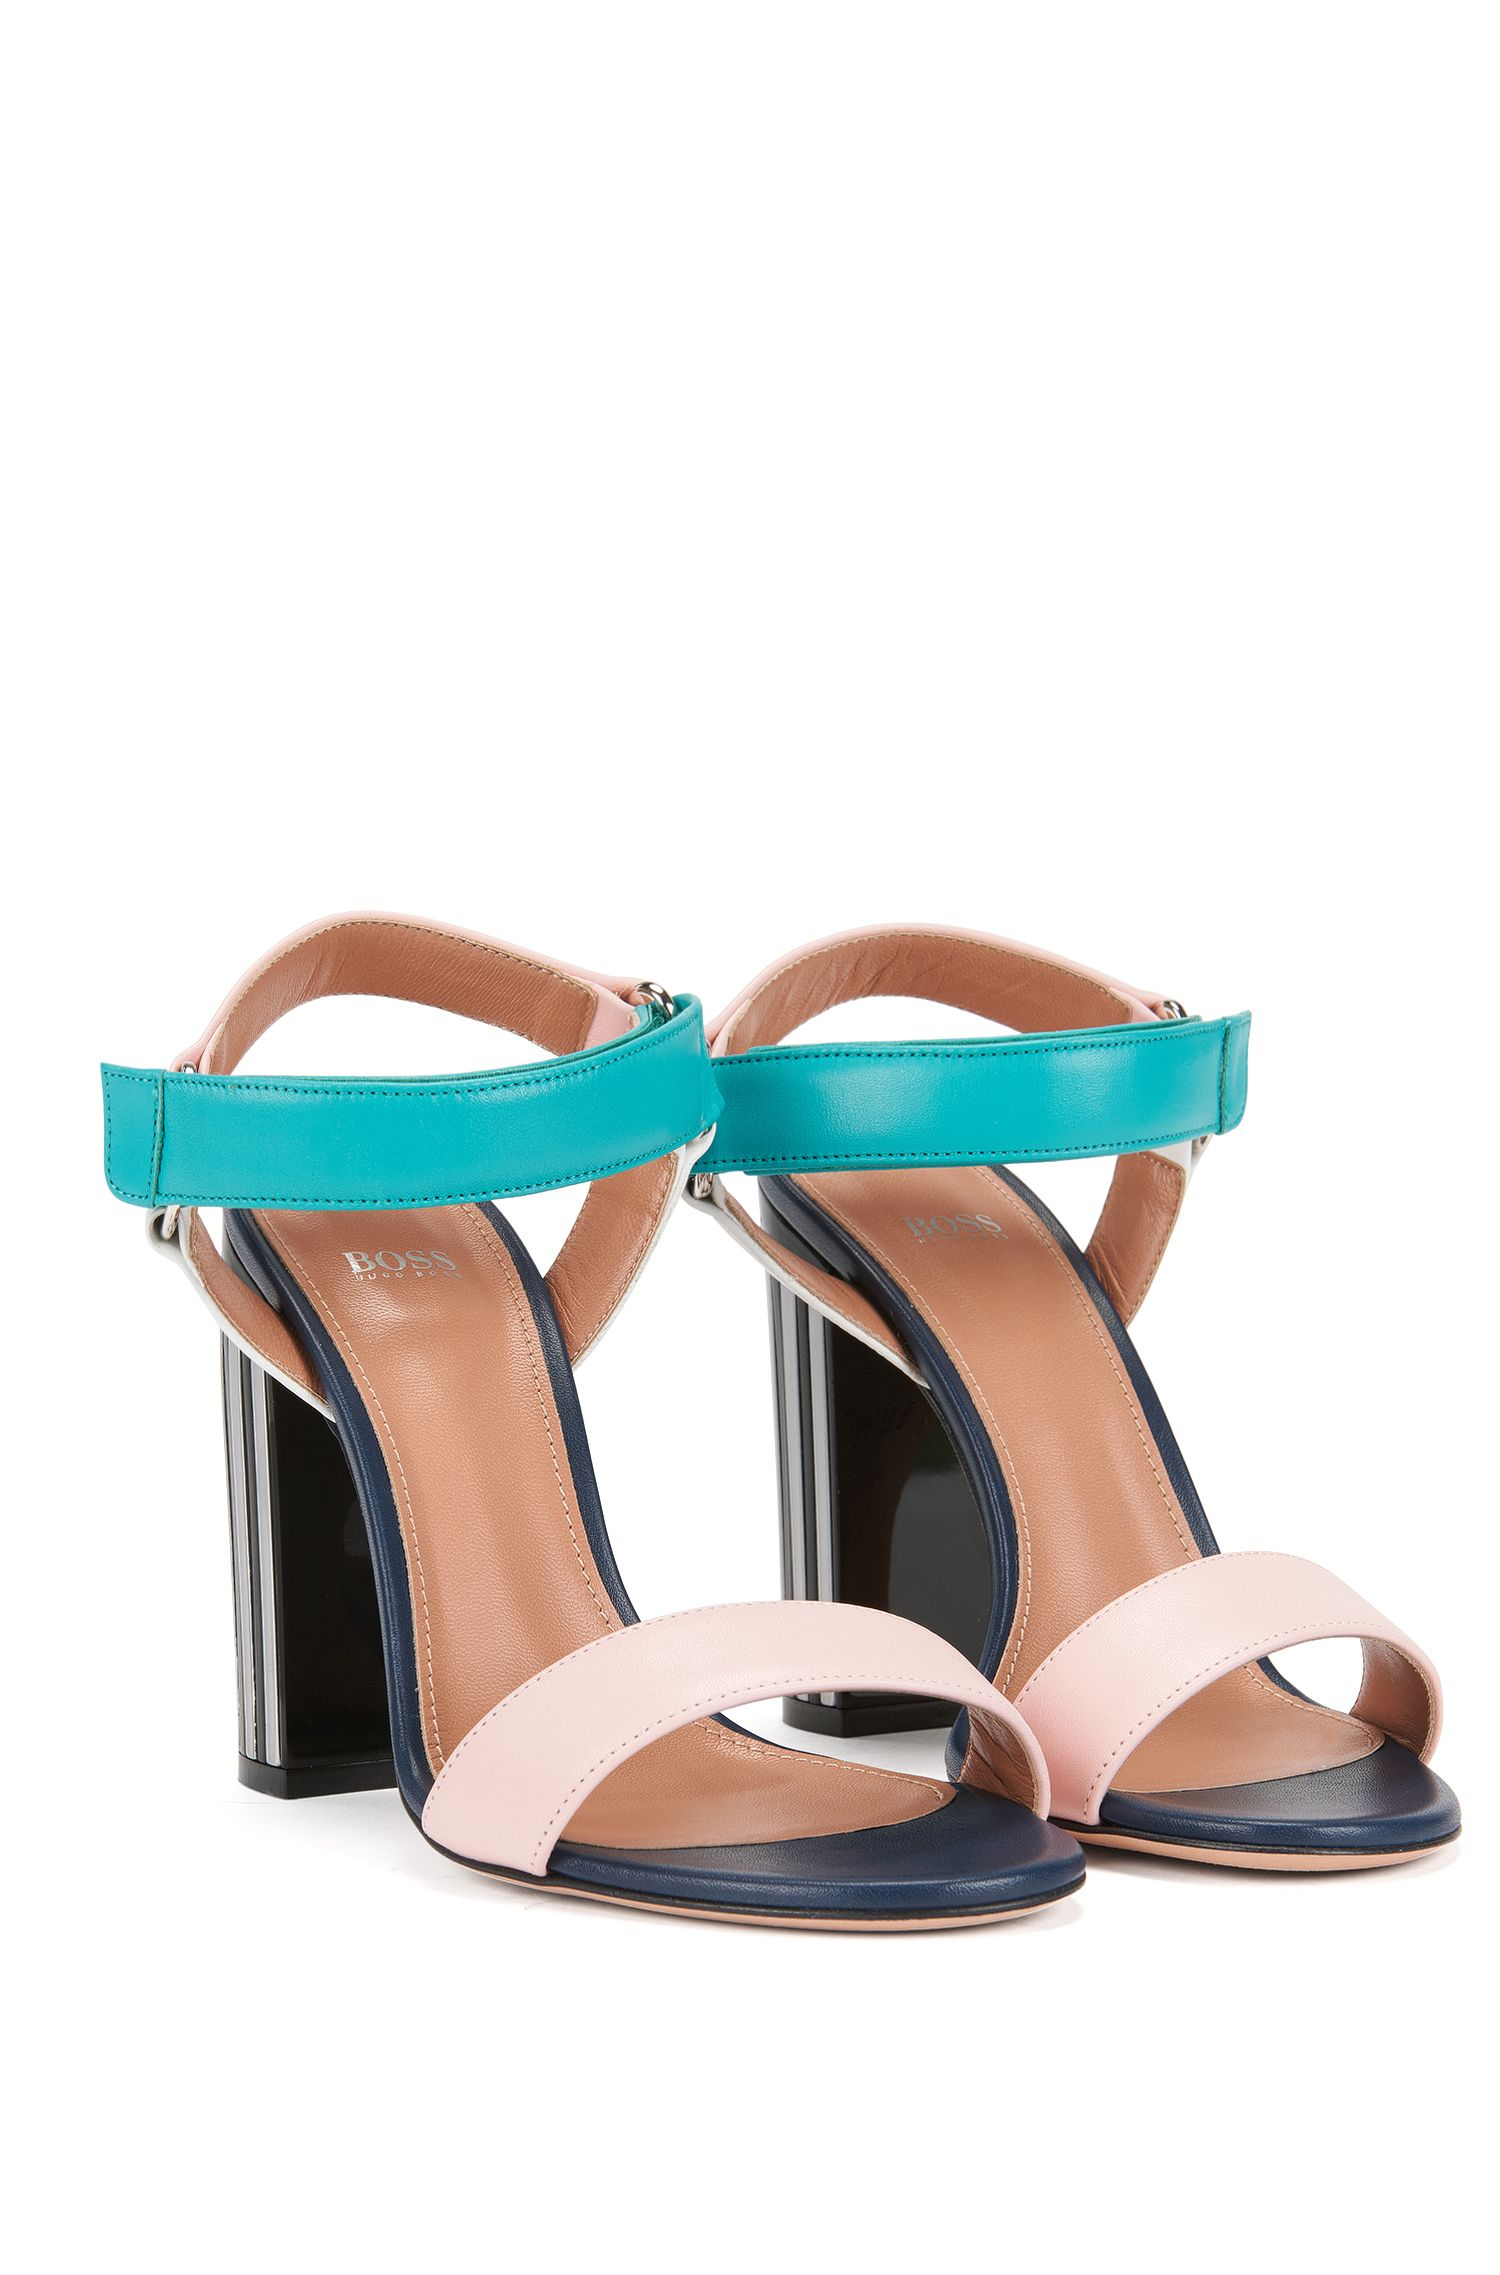 Gallery Collection Italian Leather Sandal | Sandal 100 GC , light pink